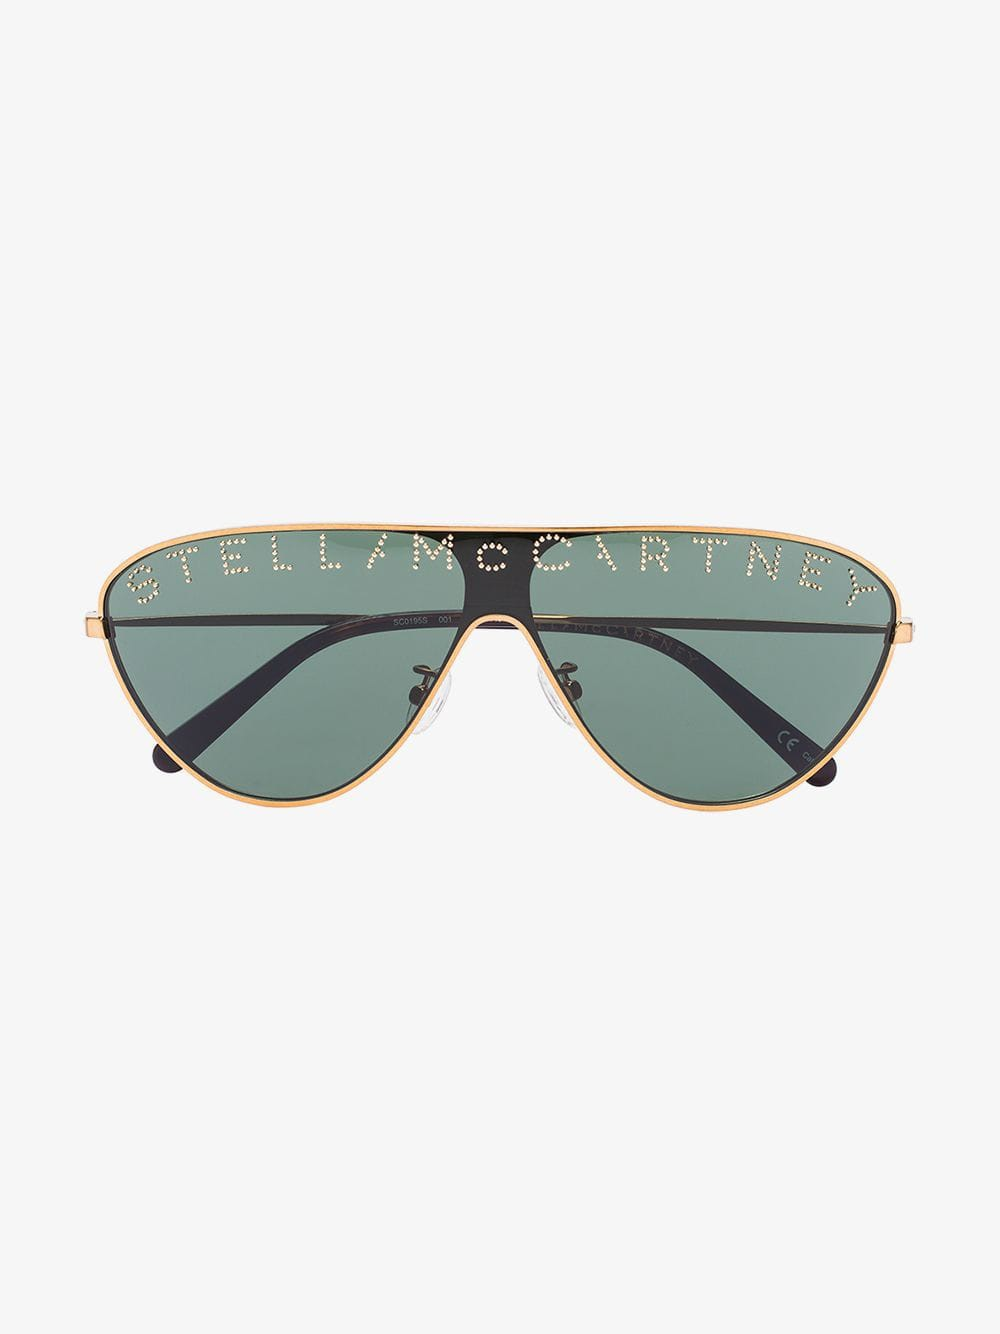 Stella McCartney Eyewear Logo aviator sunglasses in gold